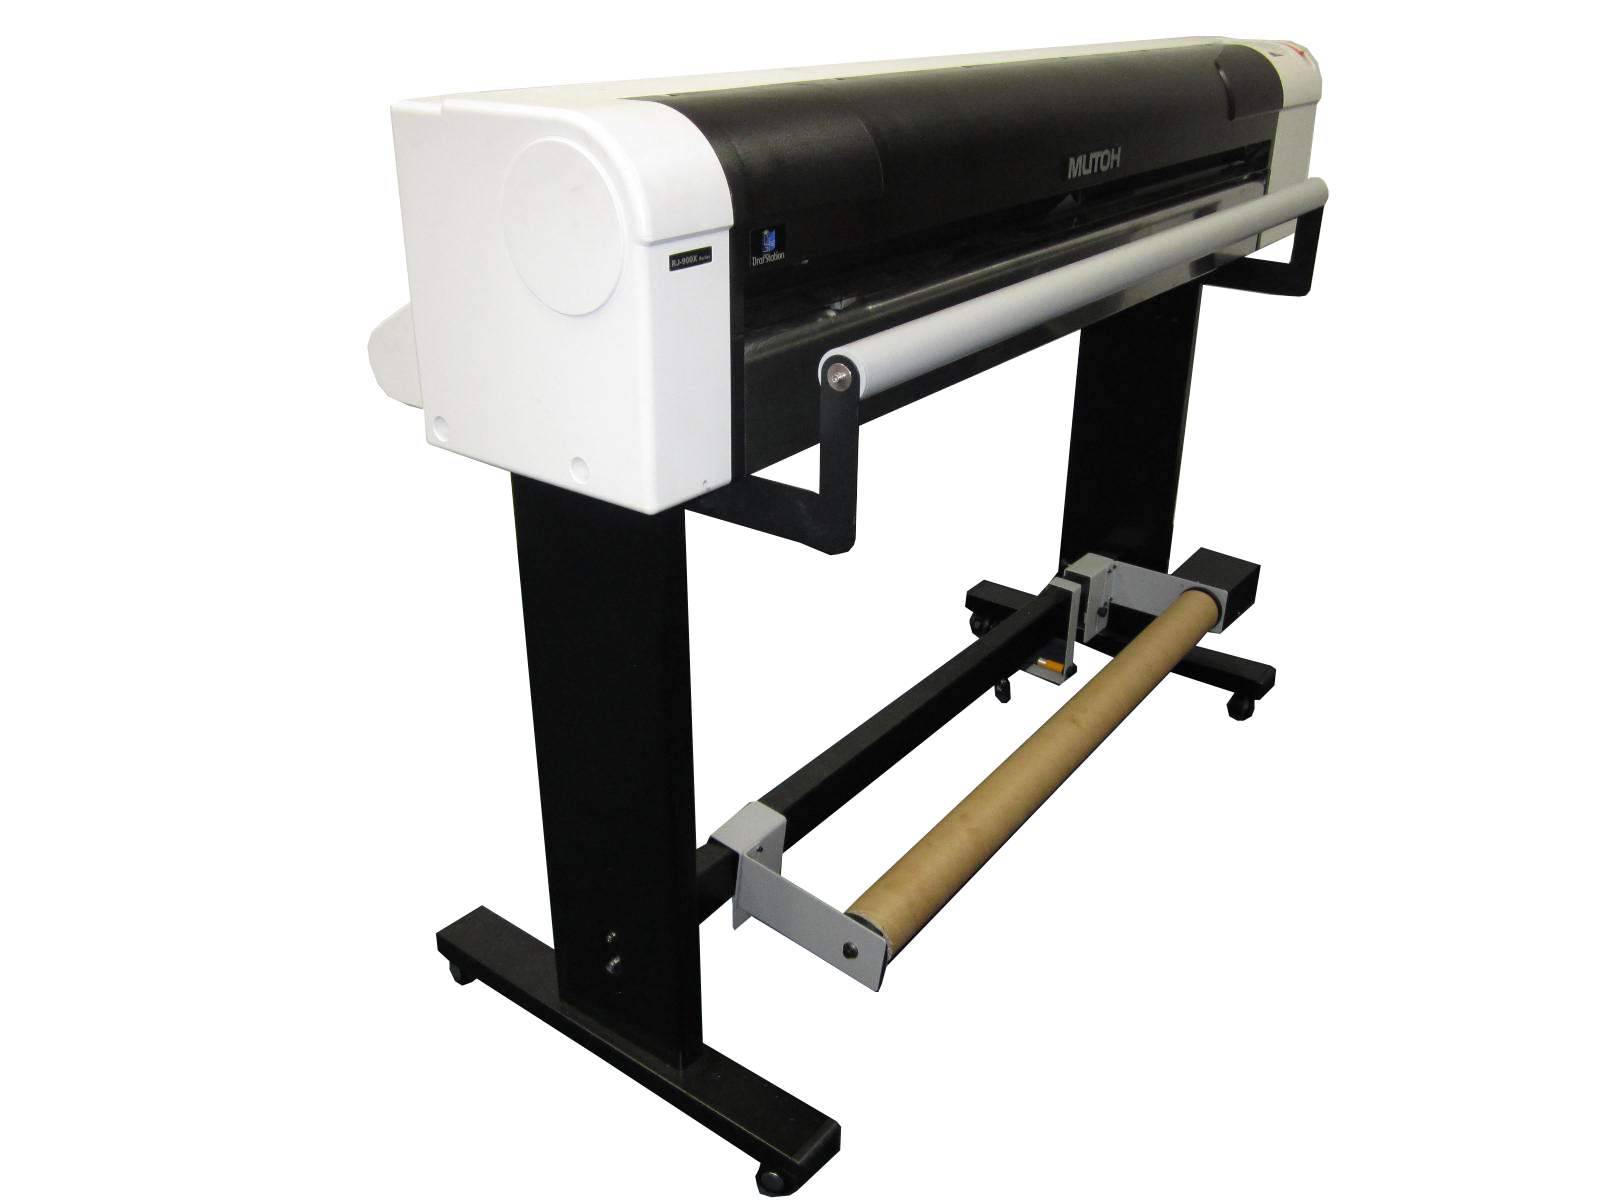 cb293fac9 Graphics One has been offering alternative media handling systems for large  format printers for many years. Recently we have been working to improve  the ...